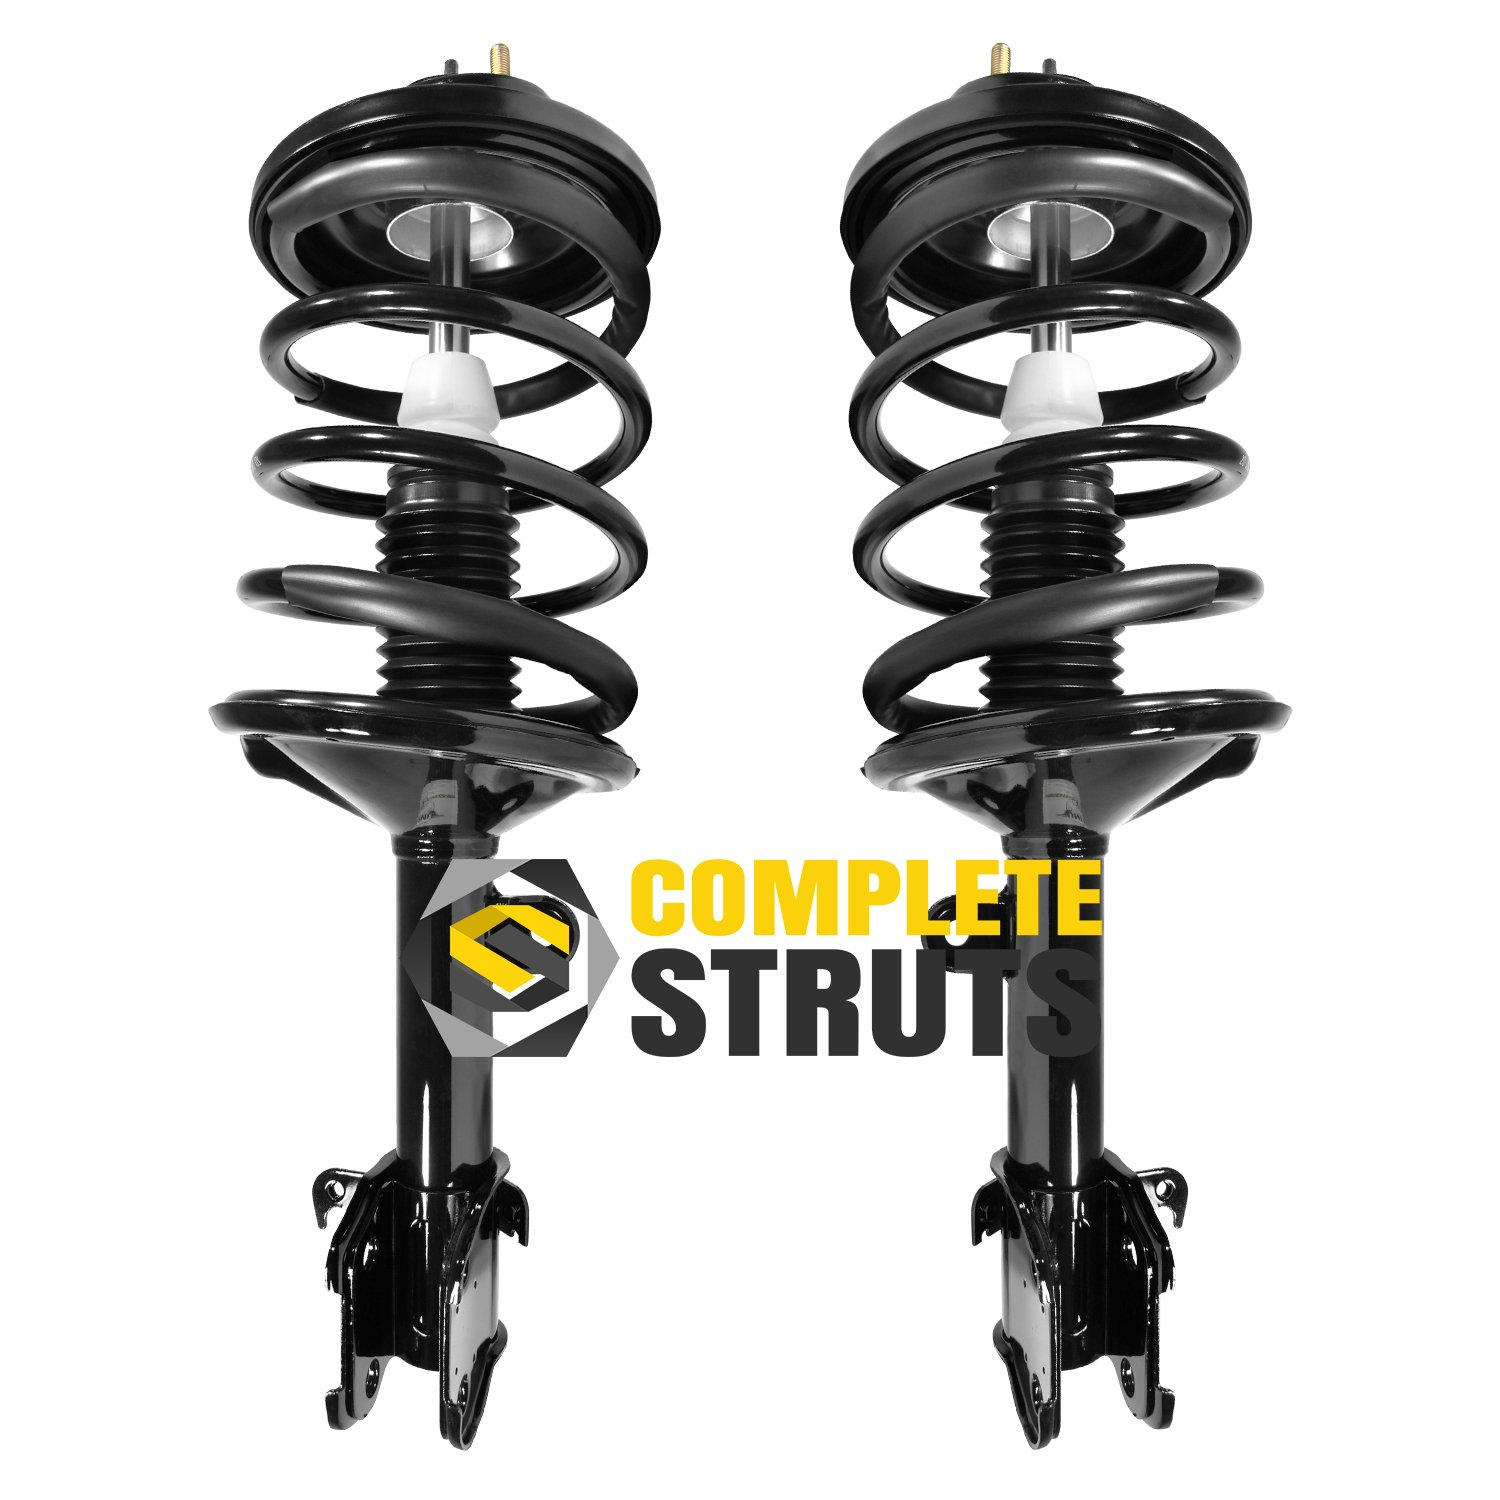 Pair Front Quick Complete Struts Coil Spring Assemblies Compatible with 2004-2005 Ford Explorer